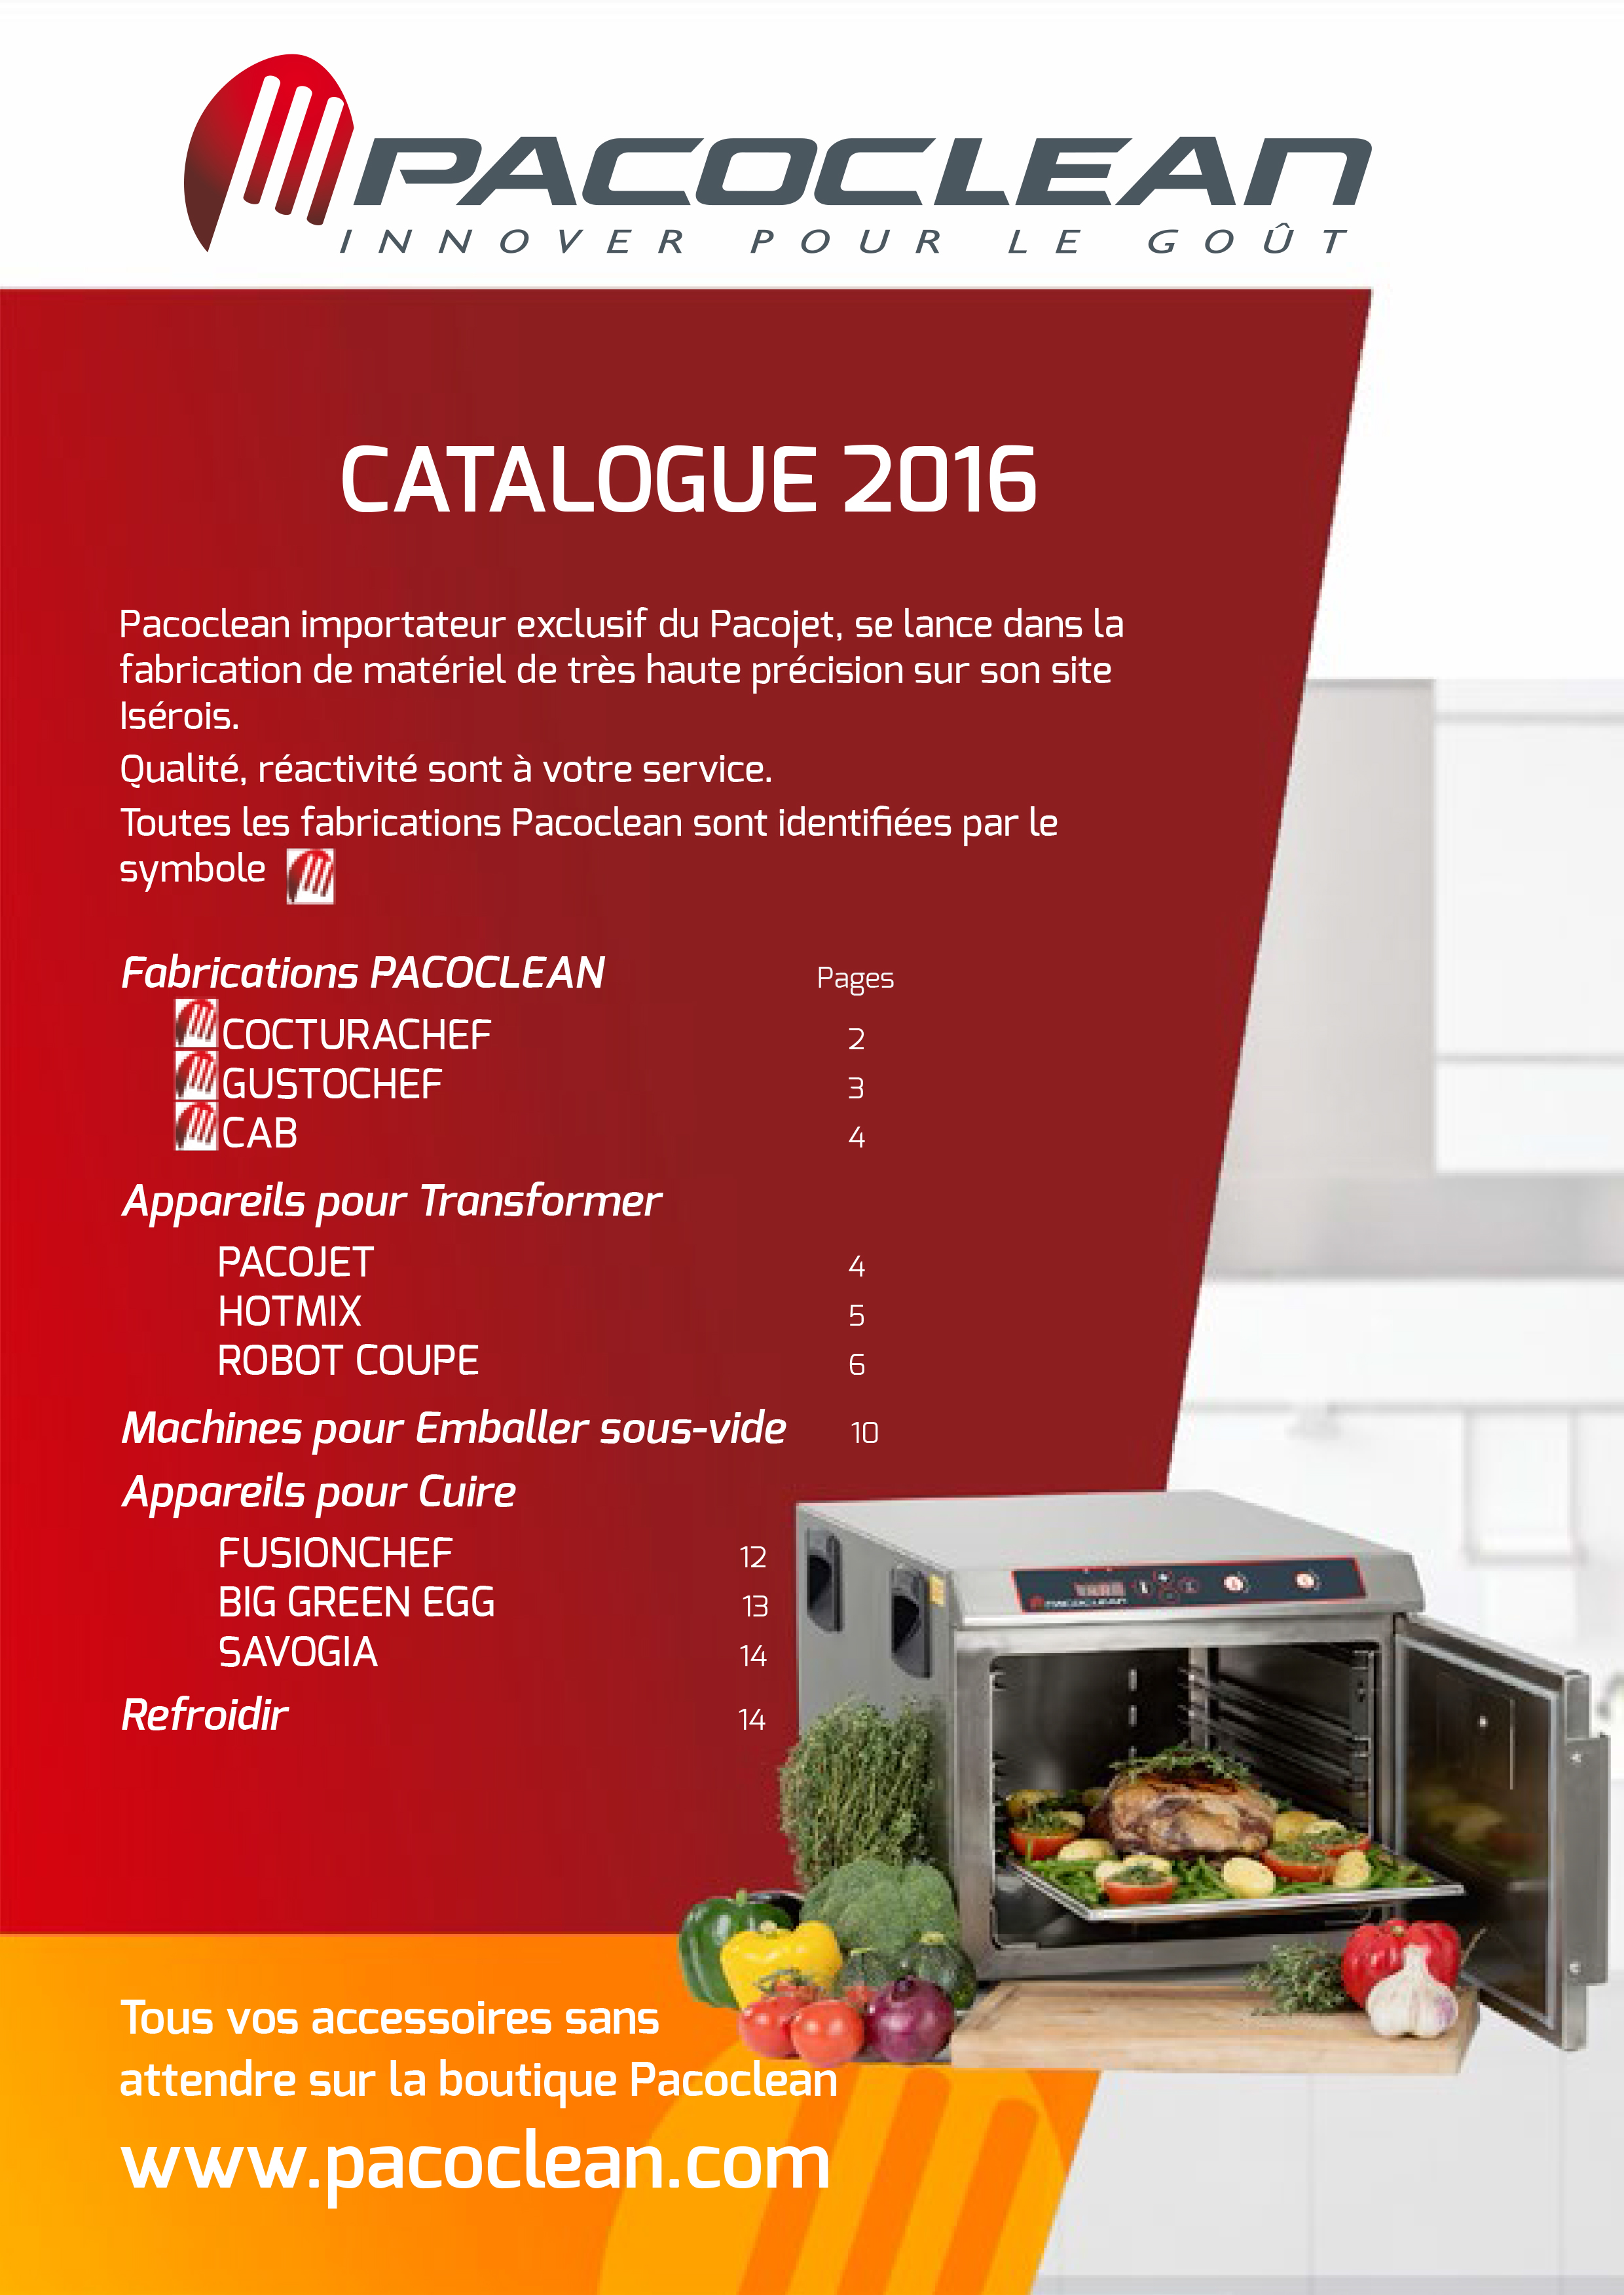 Pacoclean CAT2016 16p web